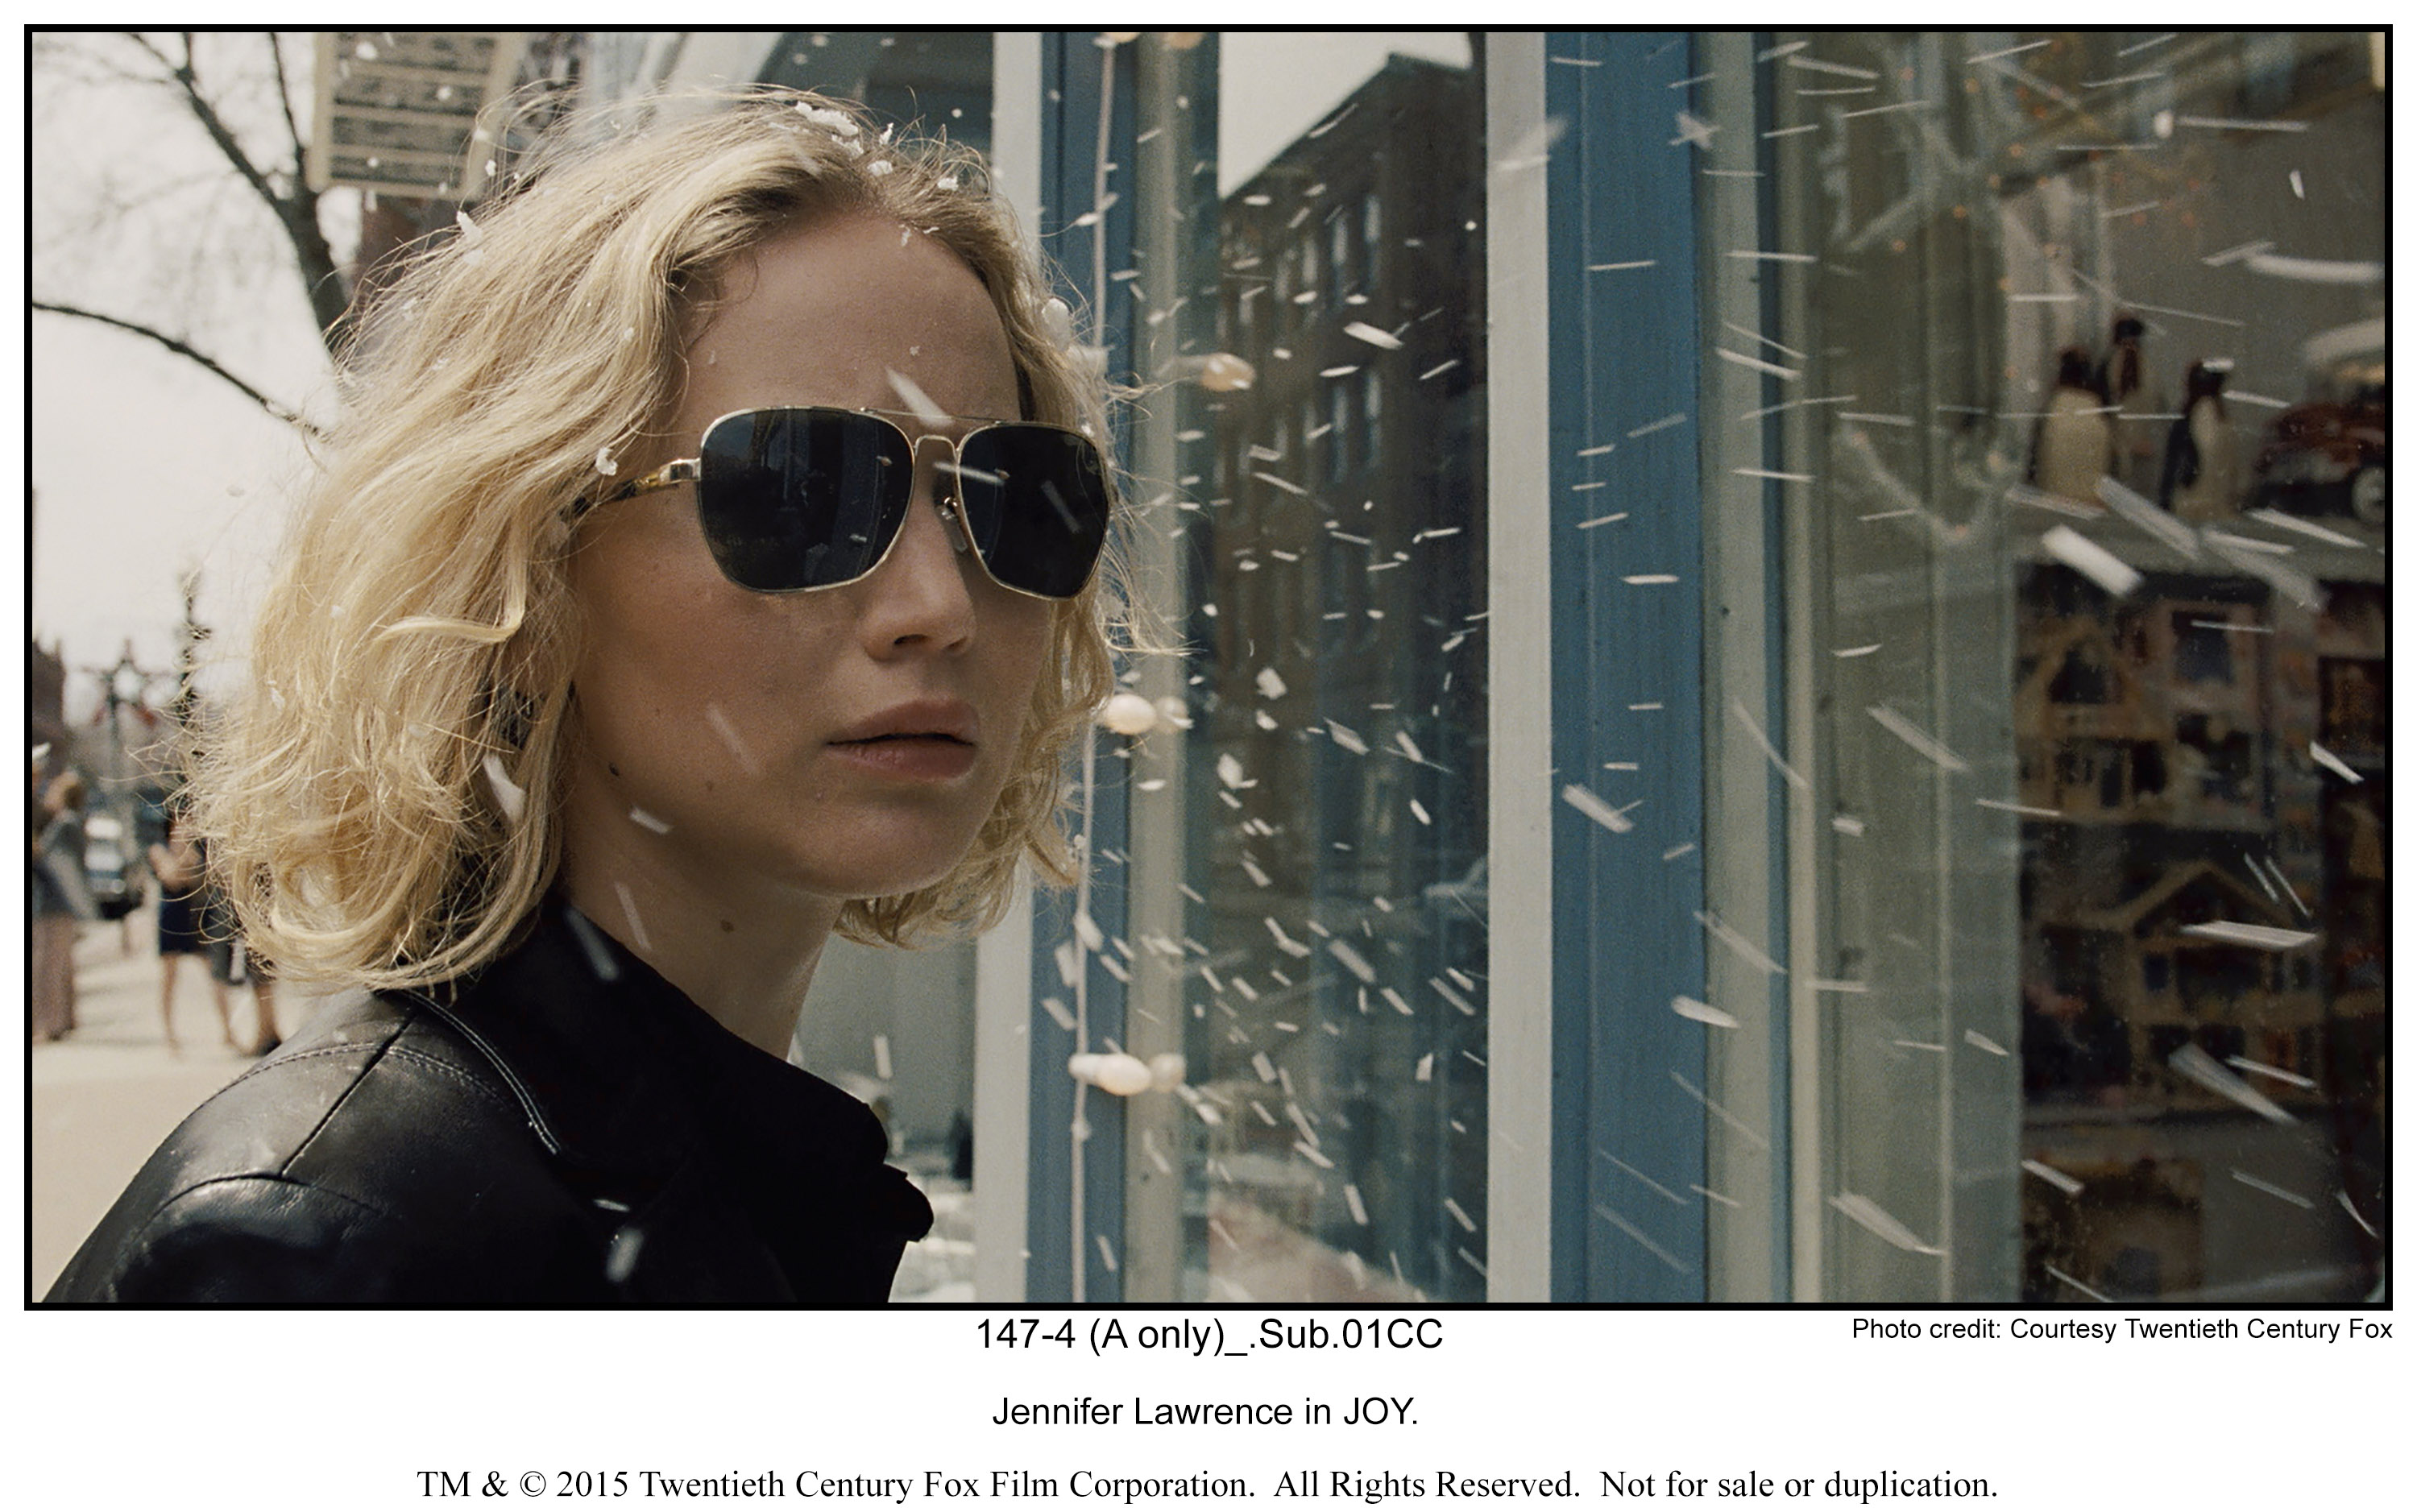 Jennifer Lawrence in JOY.